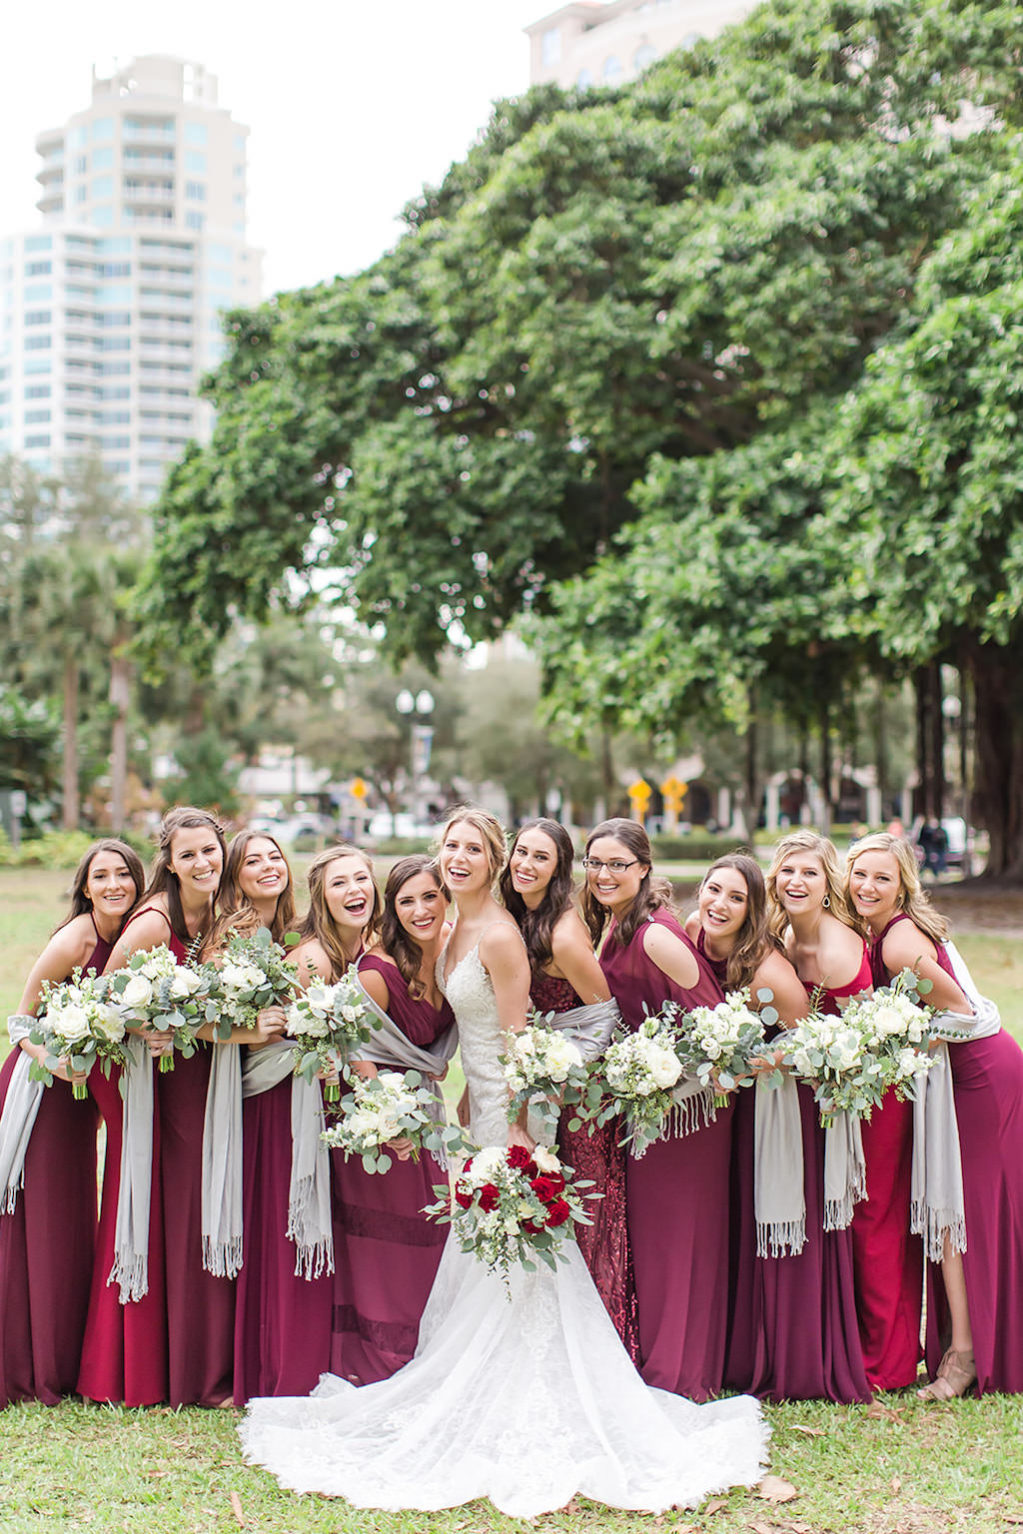 Christmas Inspired Bride and Bridesmaids, Long Garnet and Burgundy Dresses, Mix and Match Dresses Color and Style, Silver Shaw, Carrying Rustic White Bouquet with Greenery, in Downtown St. Pete Straub Park | Tampa Bay Wedding Photographers Shauna and Jordon Photography